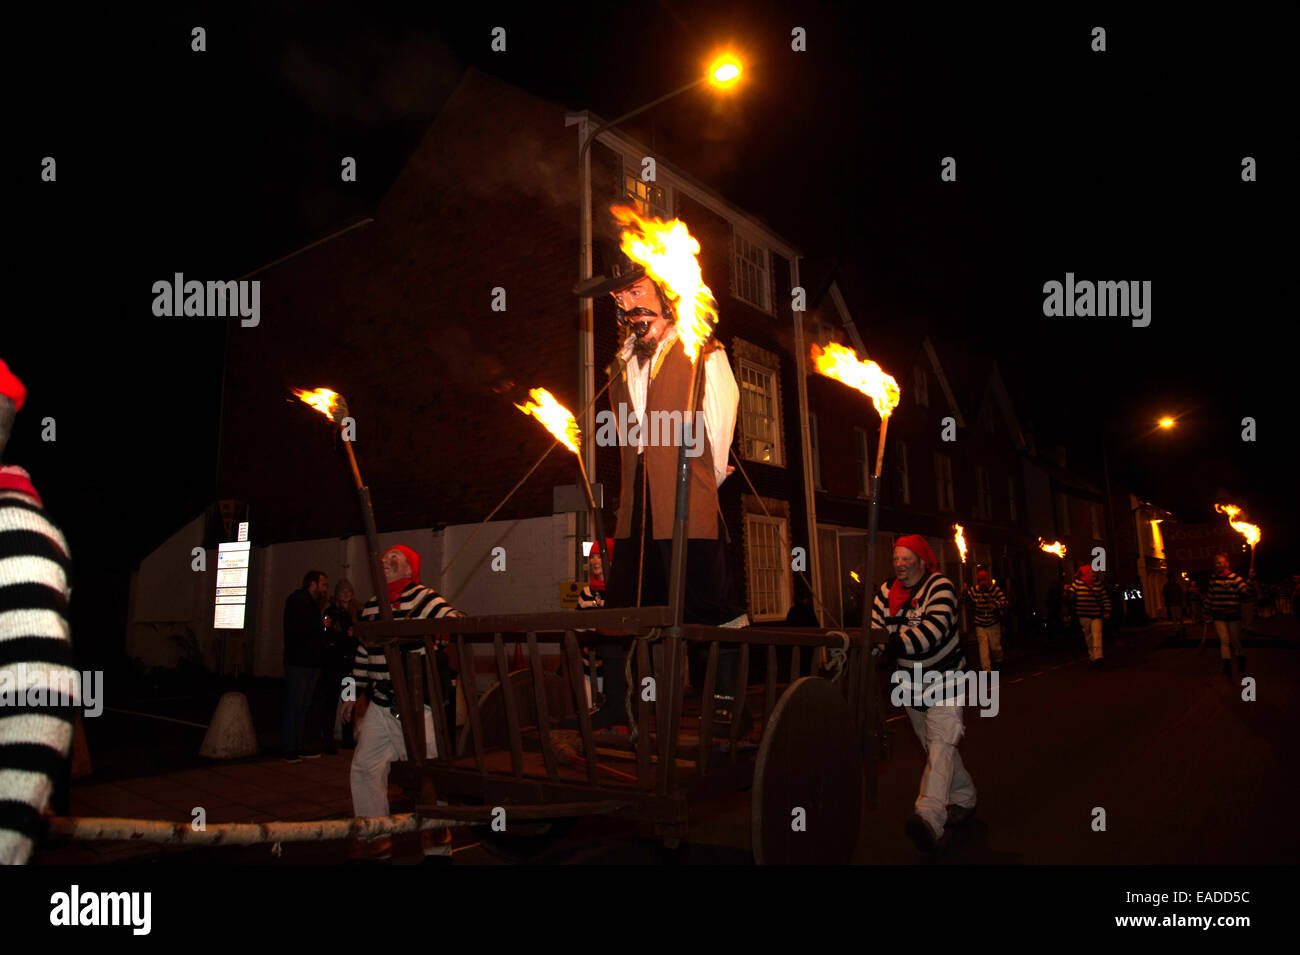 Guy Fawkes Effigy Stock Photos and Images